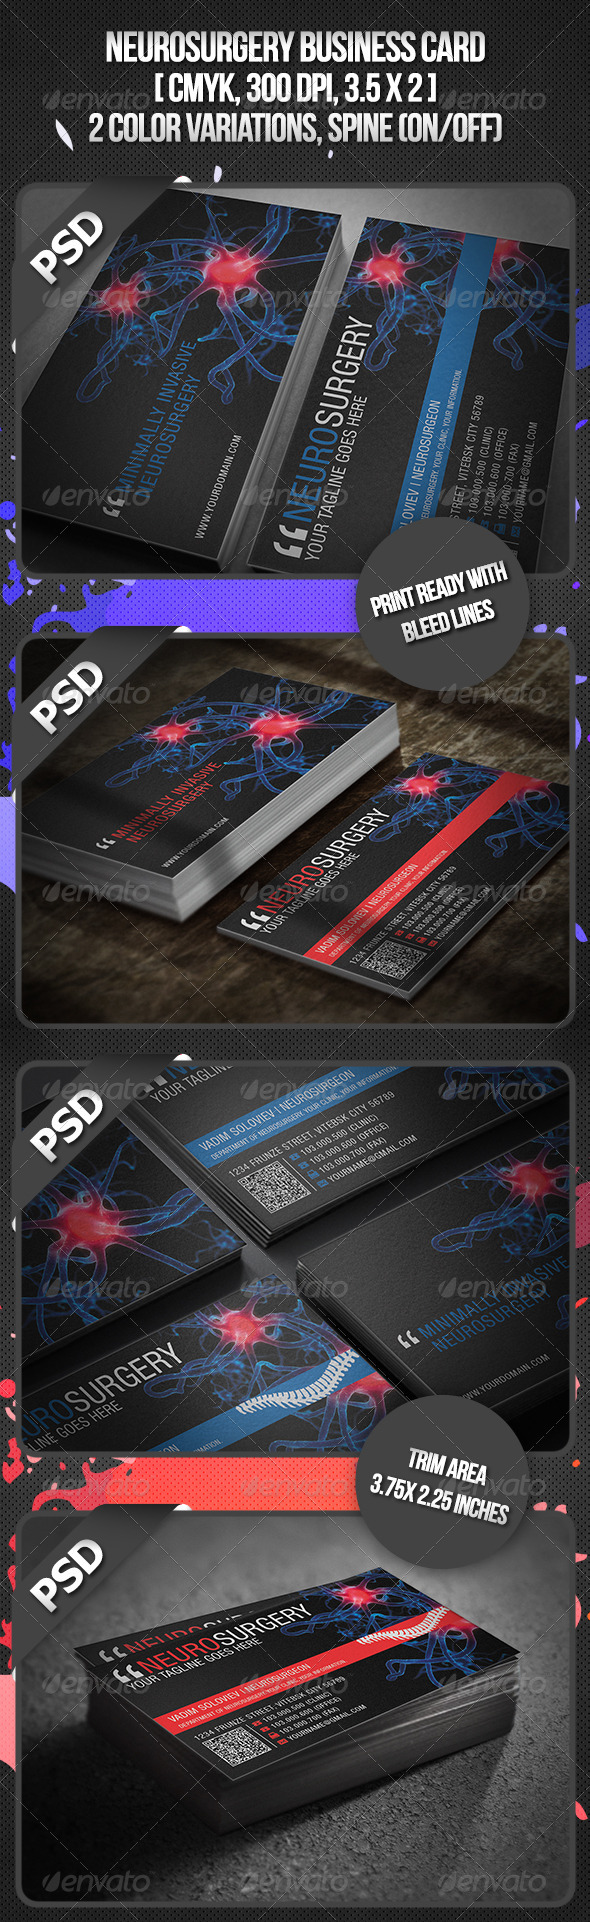 Neurosurgery Business Card - Industry Specific Business Cards